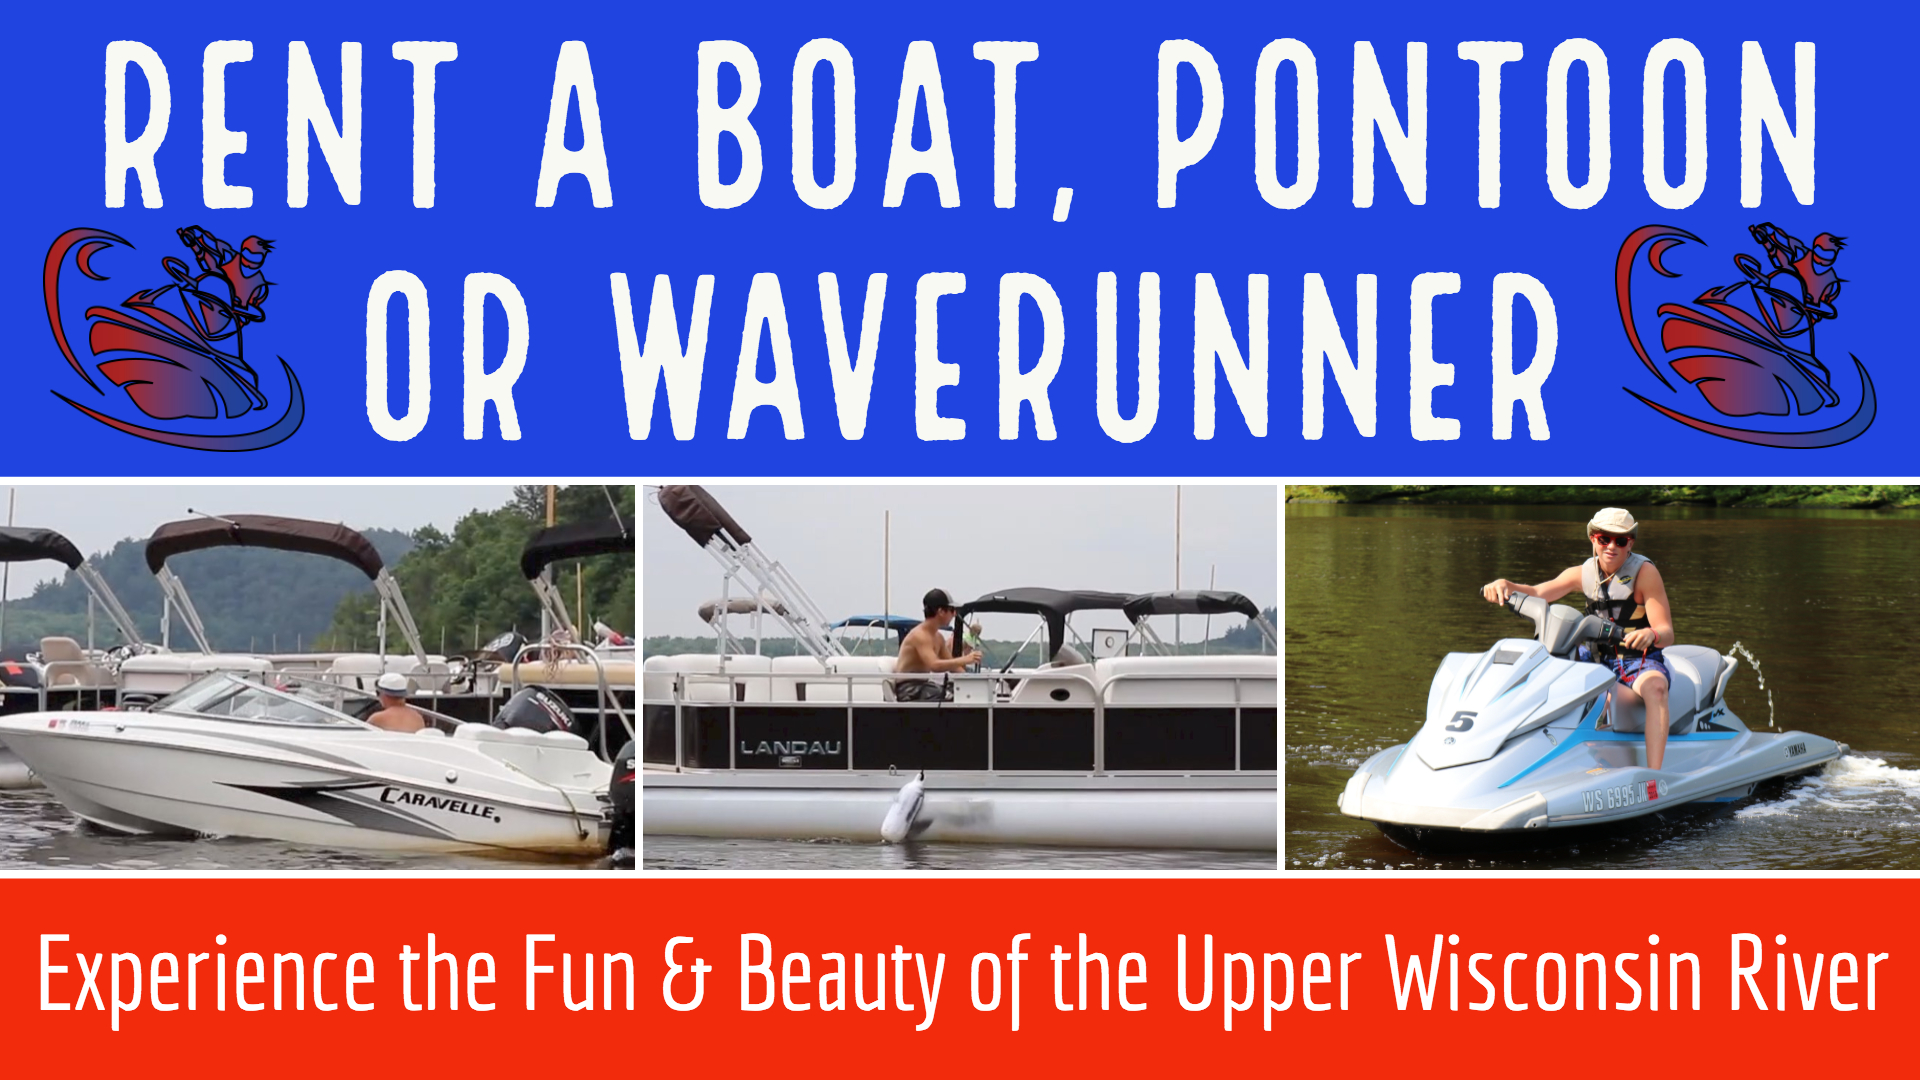 Home - Holiday Shores Wisconsin Dells Pontoon, WaveRunner & Boat Rentals